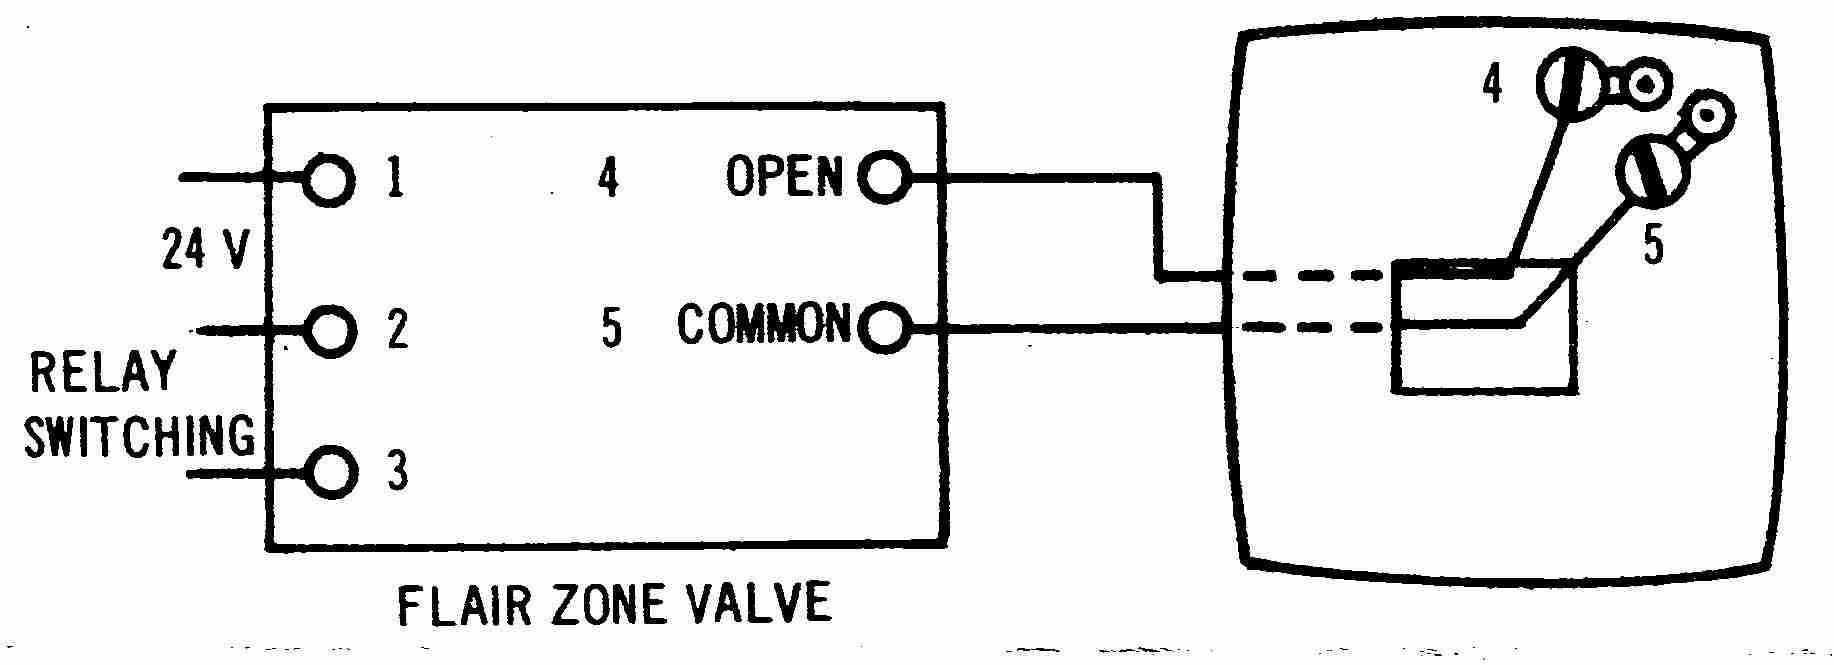 Flair2w_001_DJFc1 room thermostat wiring diagrams for hvac systems Basic Electrical Wiring Diagrams at bayanpartner.co